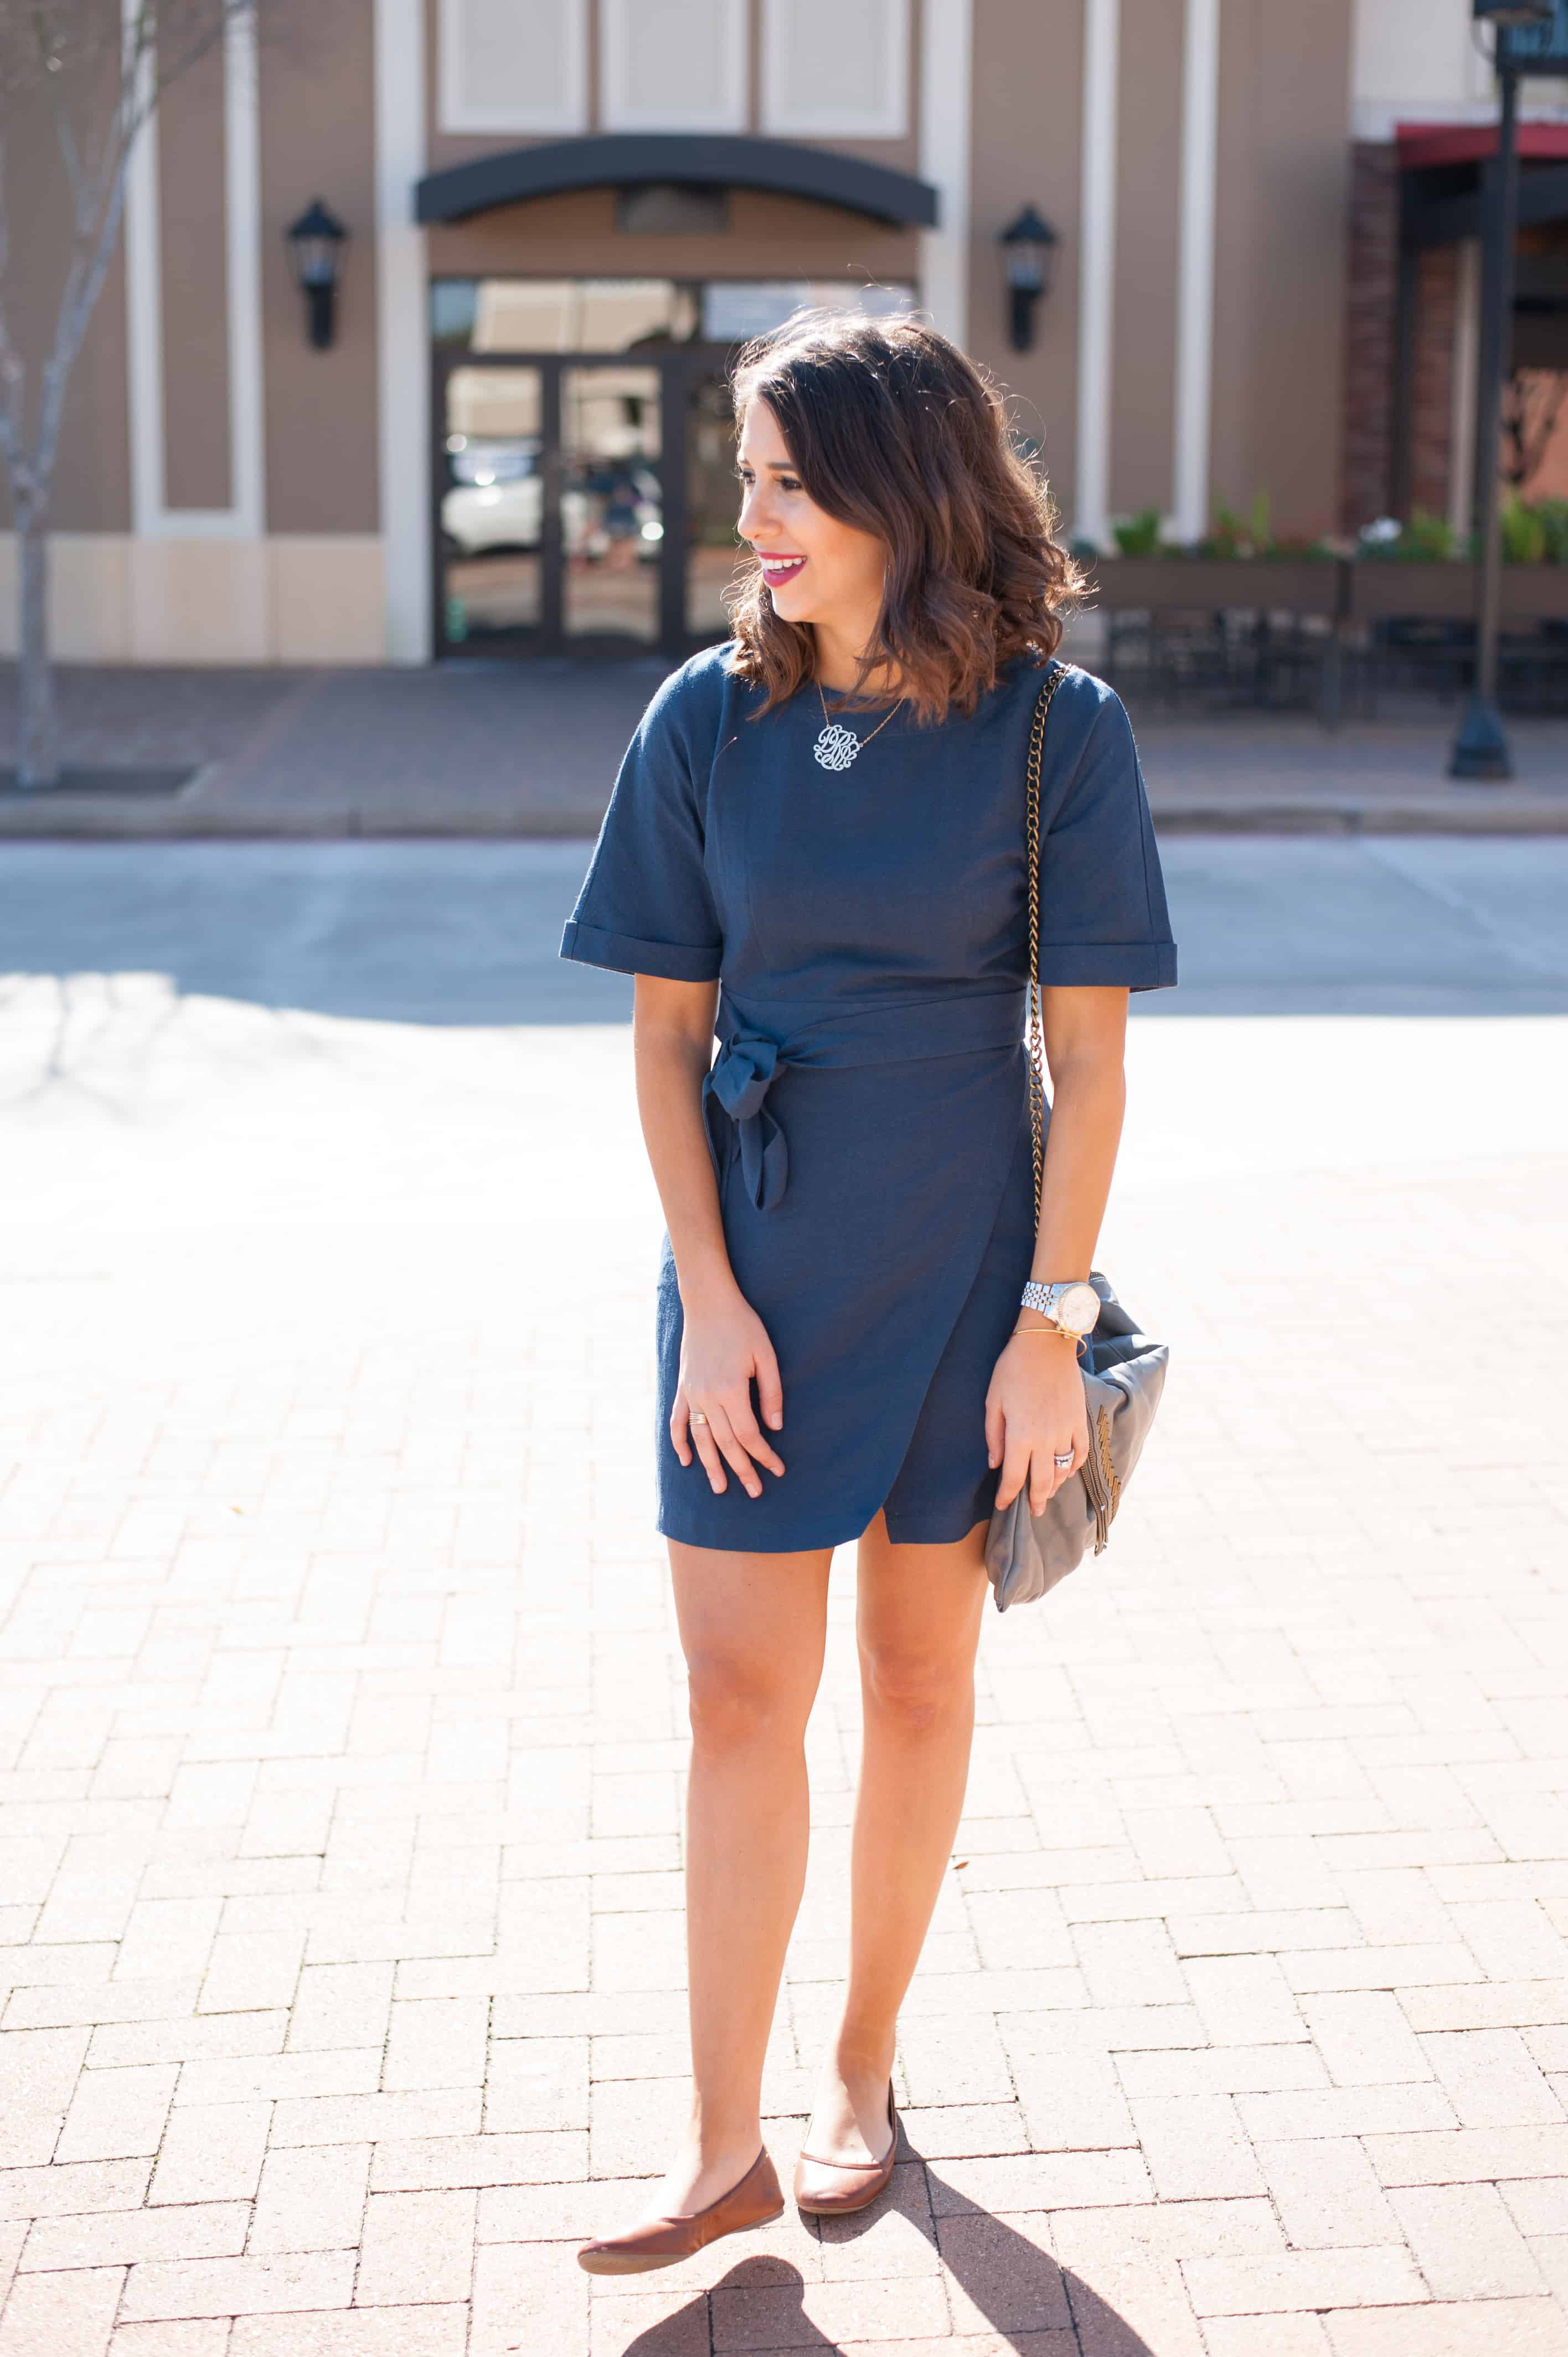 dress_up_buttercup_dede_raad_fashion_blogger_houston (13 of 15)